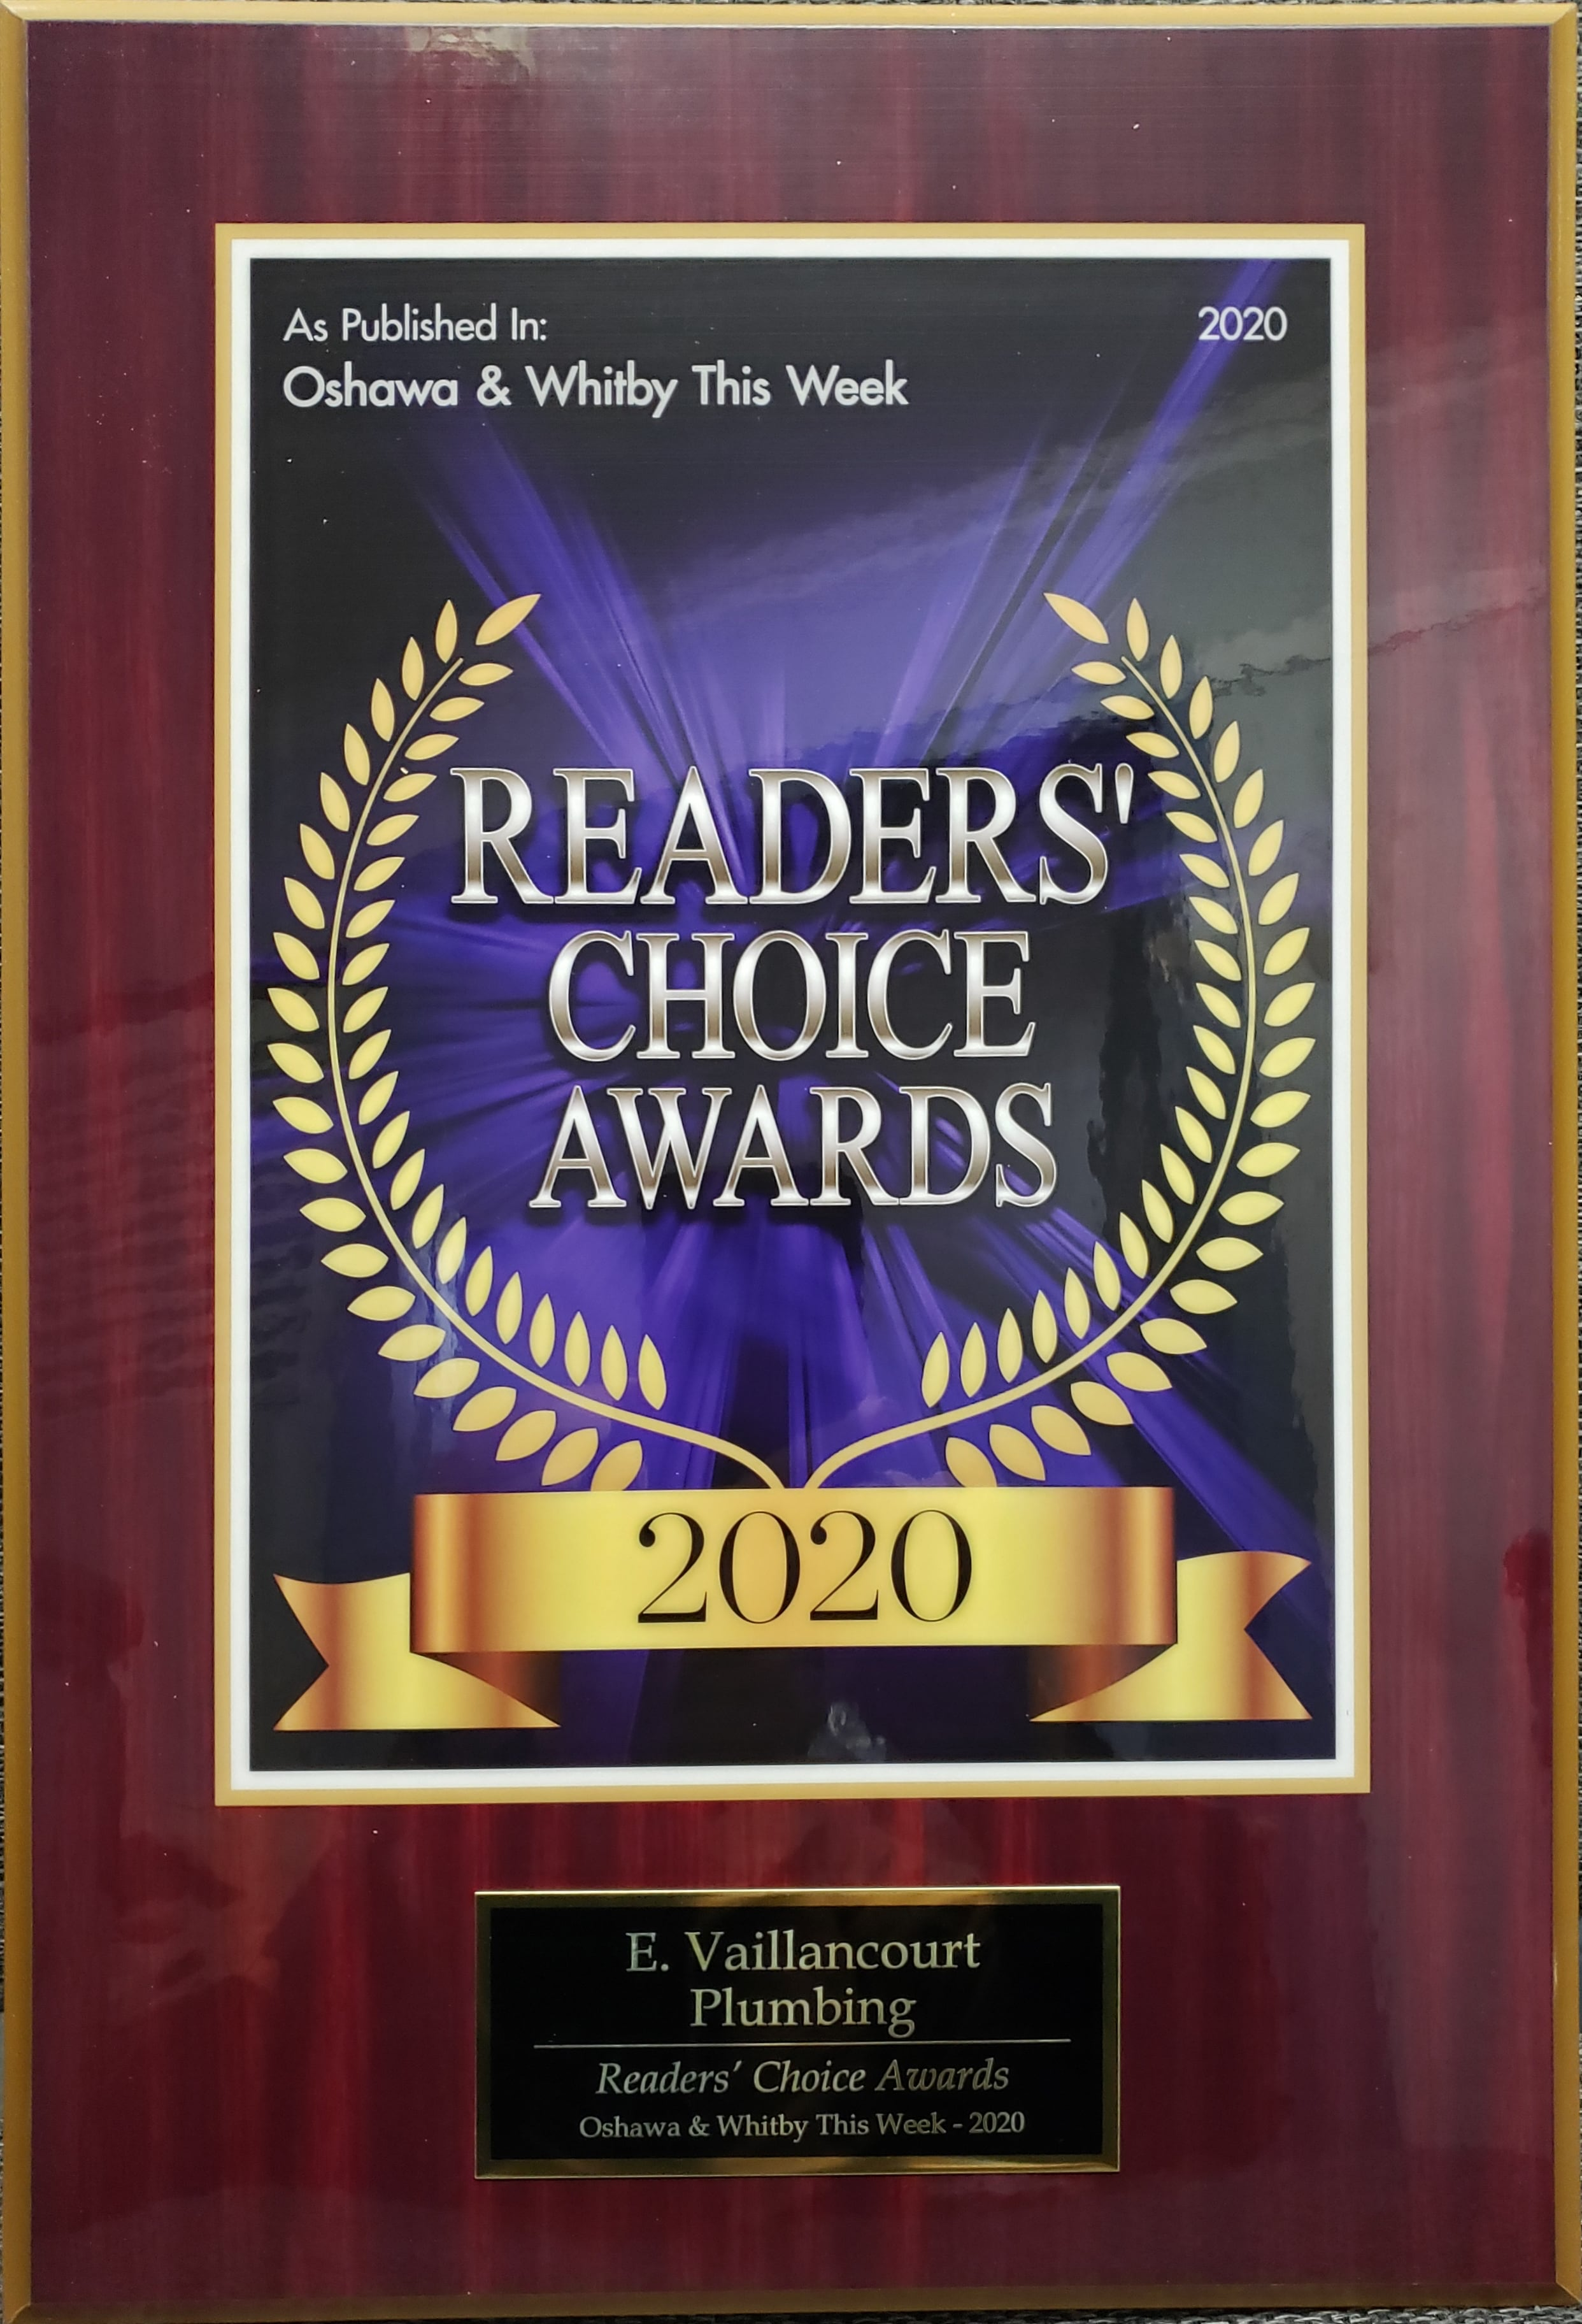 2020 Readers' Choice Award - E. Vaillancourt Plumbing